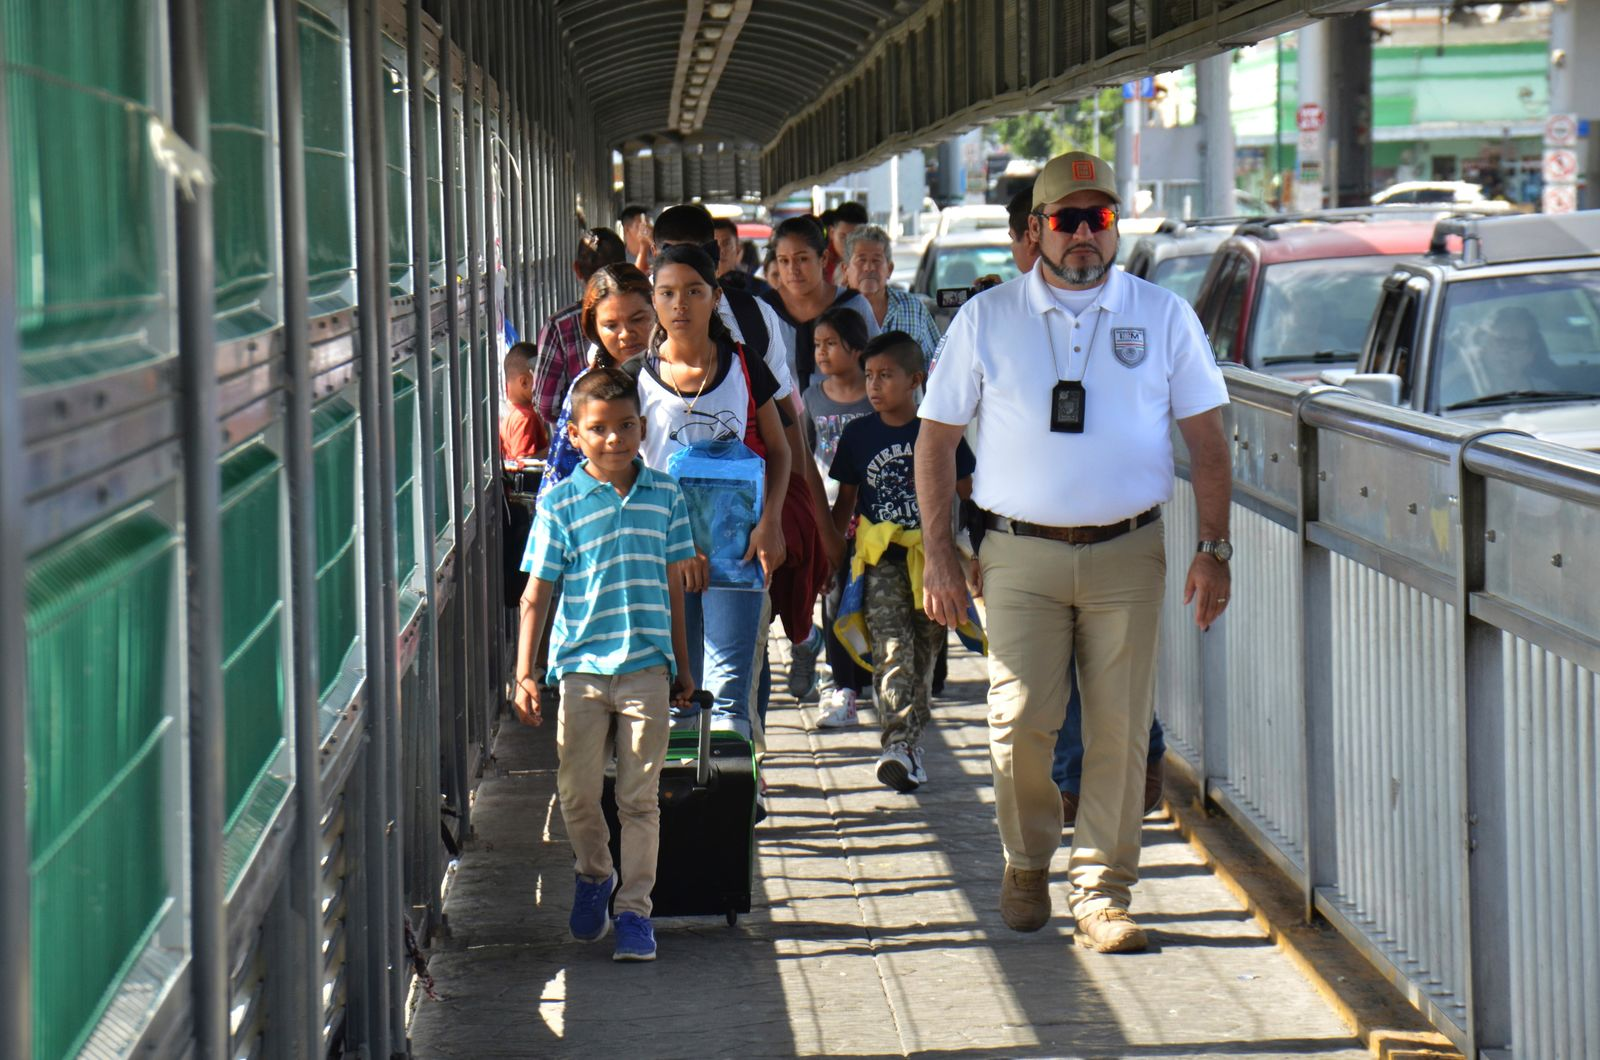 A Mexican migration officer escorts a group of migrants to apply for asylum in the United States, on the International Bridge 1 in Nuevo Laredo, Mexico. (AP Photo/Salvador Gonzalez)